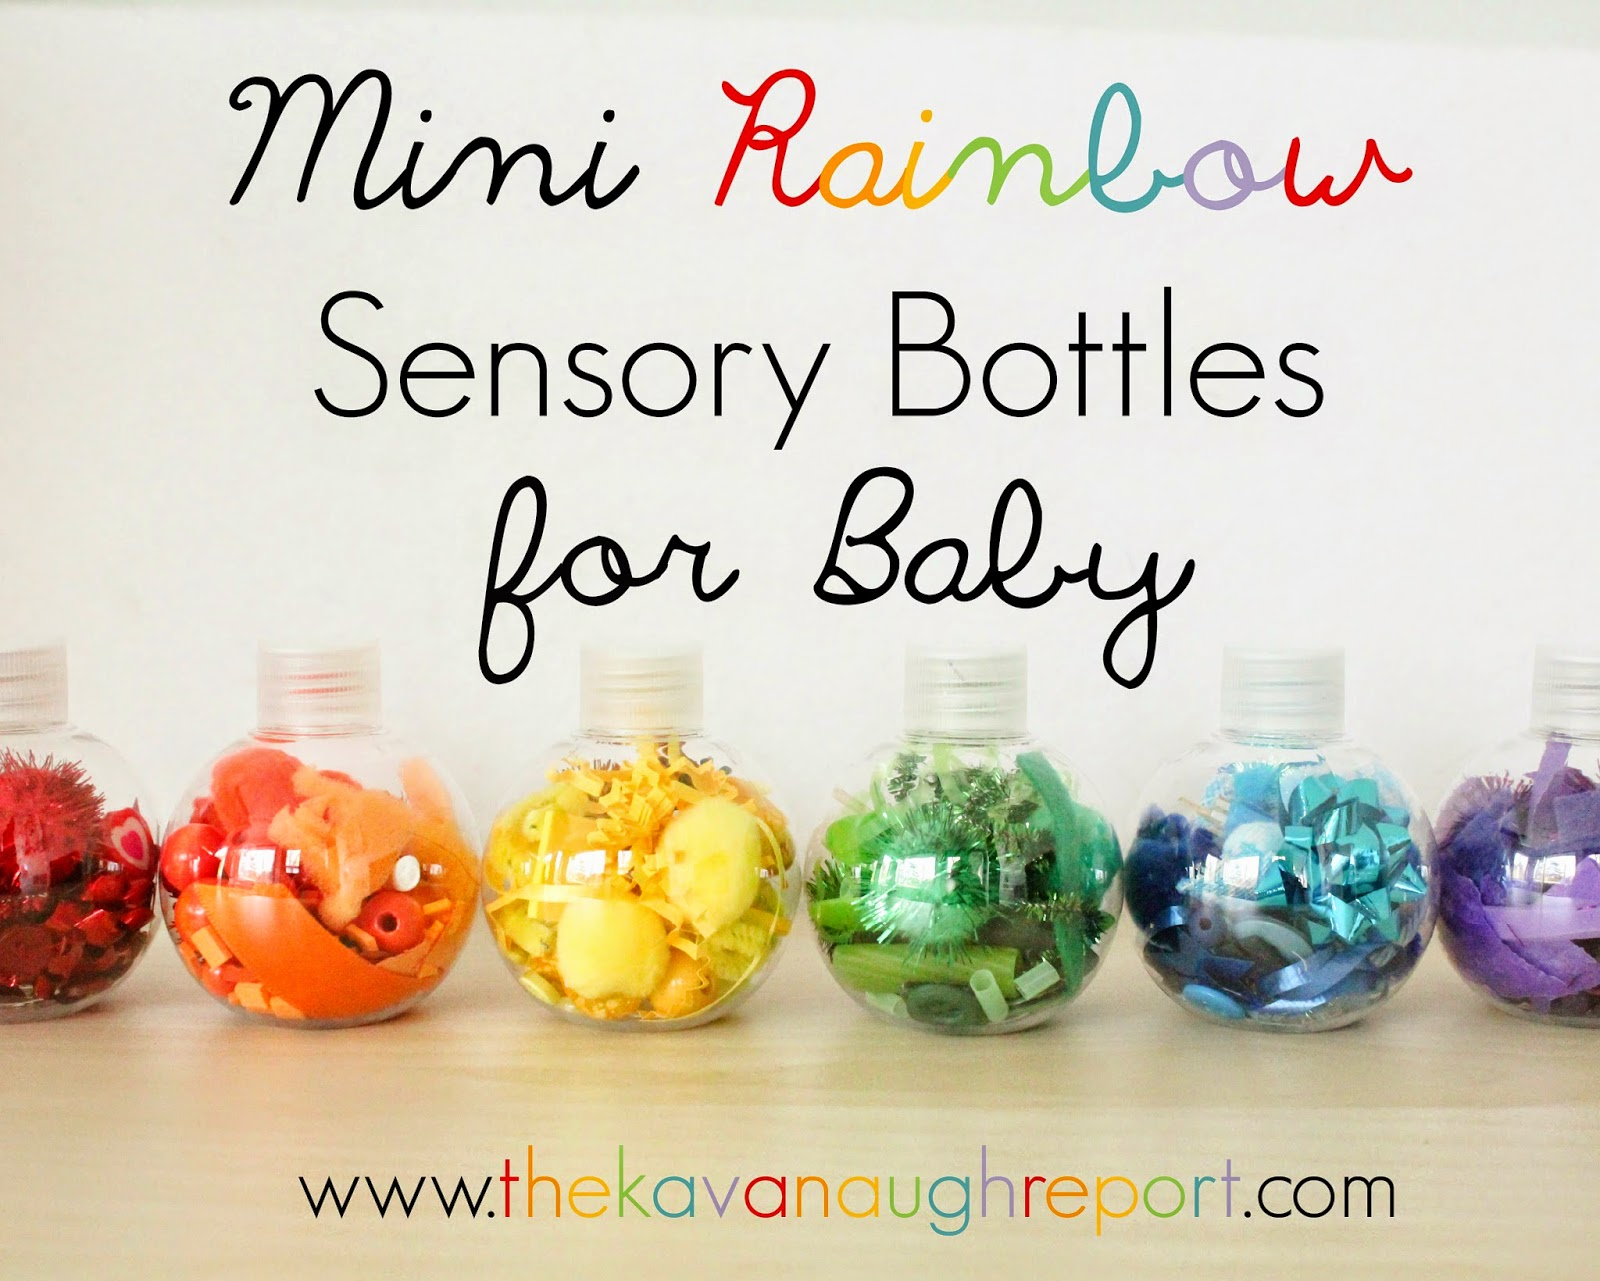 Montessori friendly way to introduce colors and small object to babies in a safe and fun way.